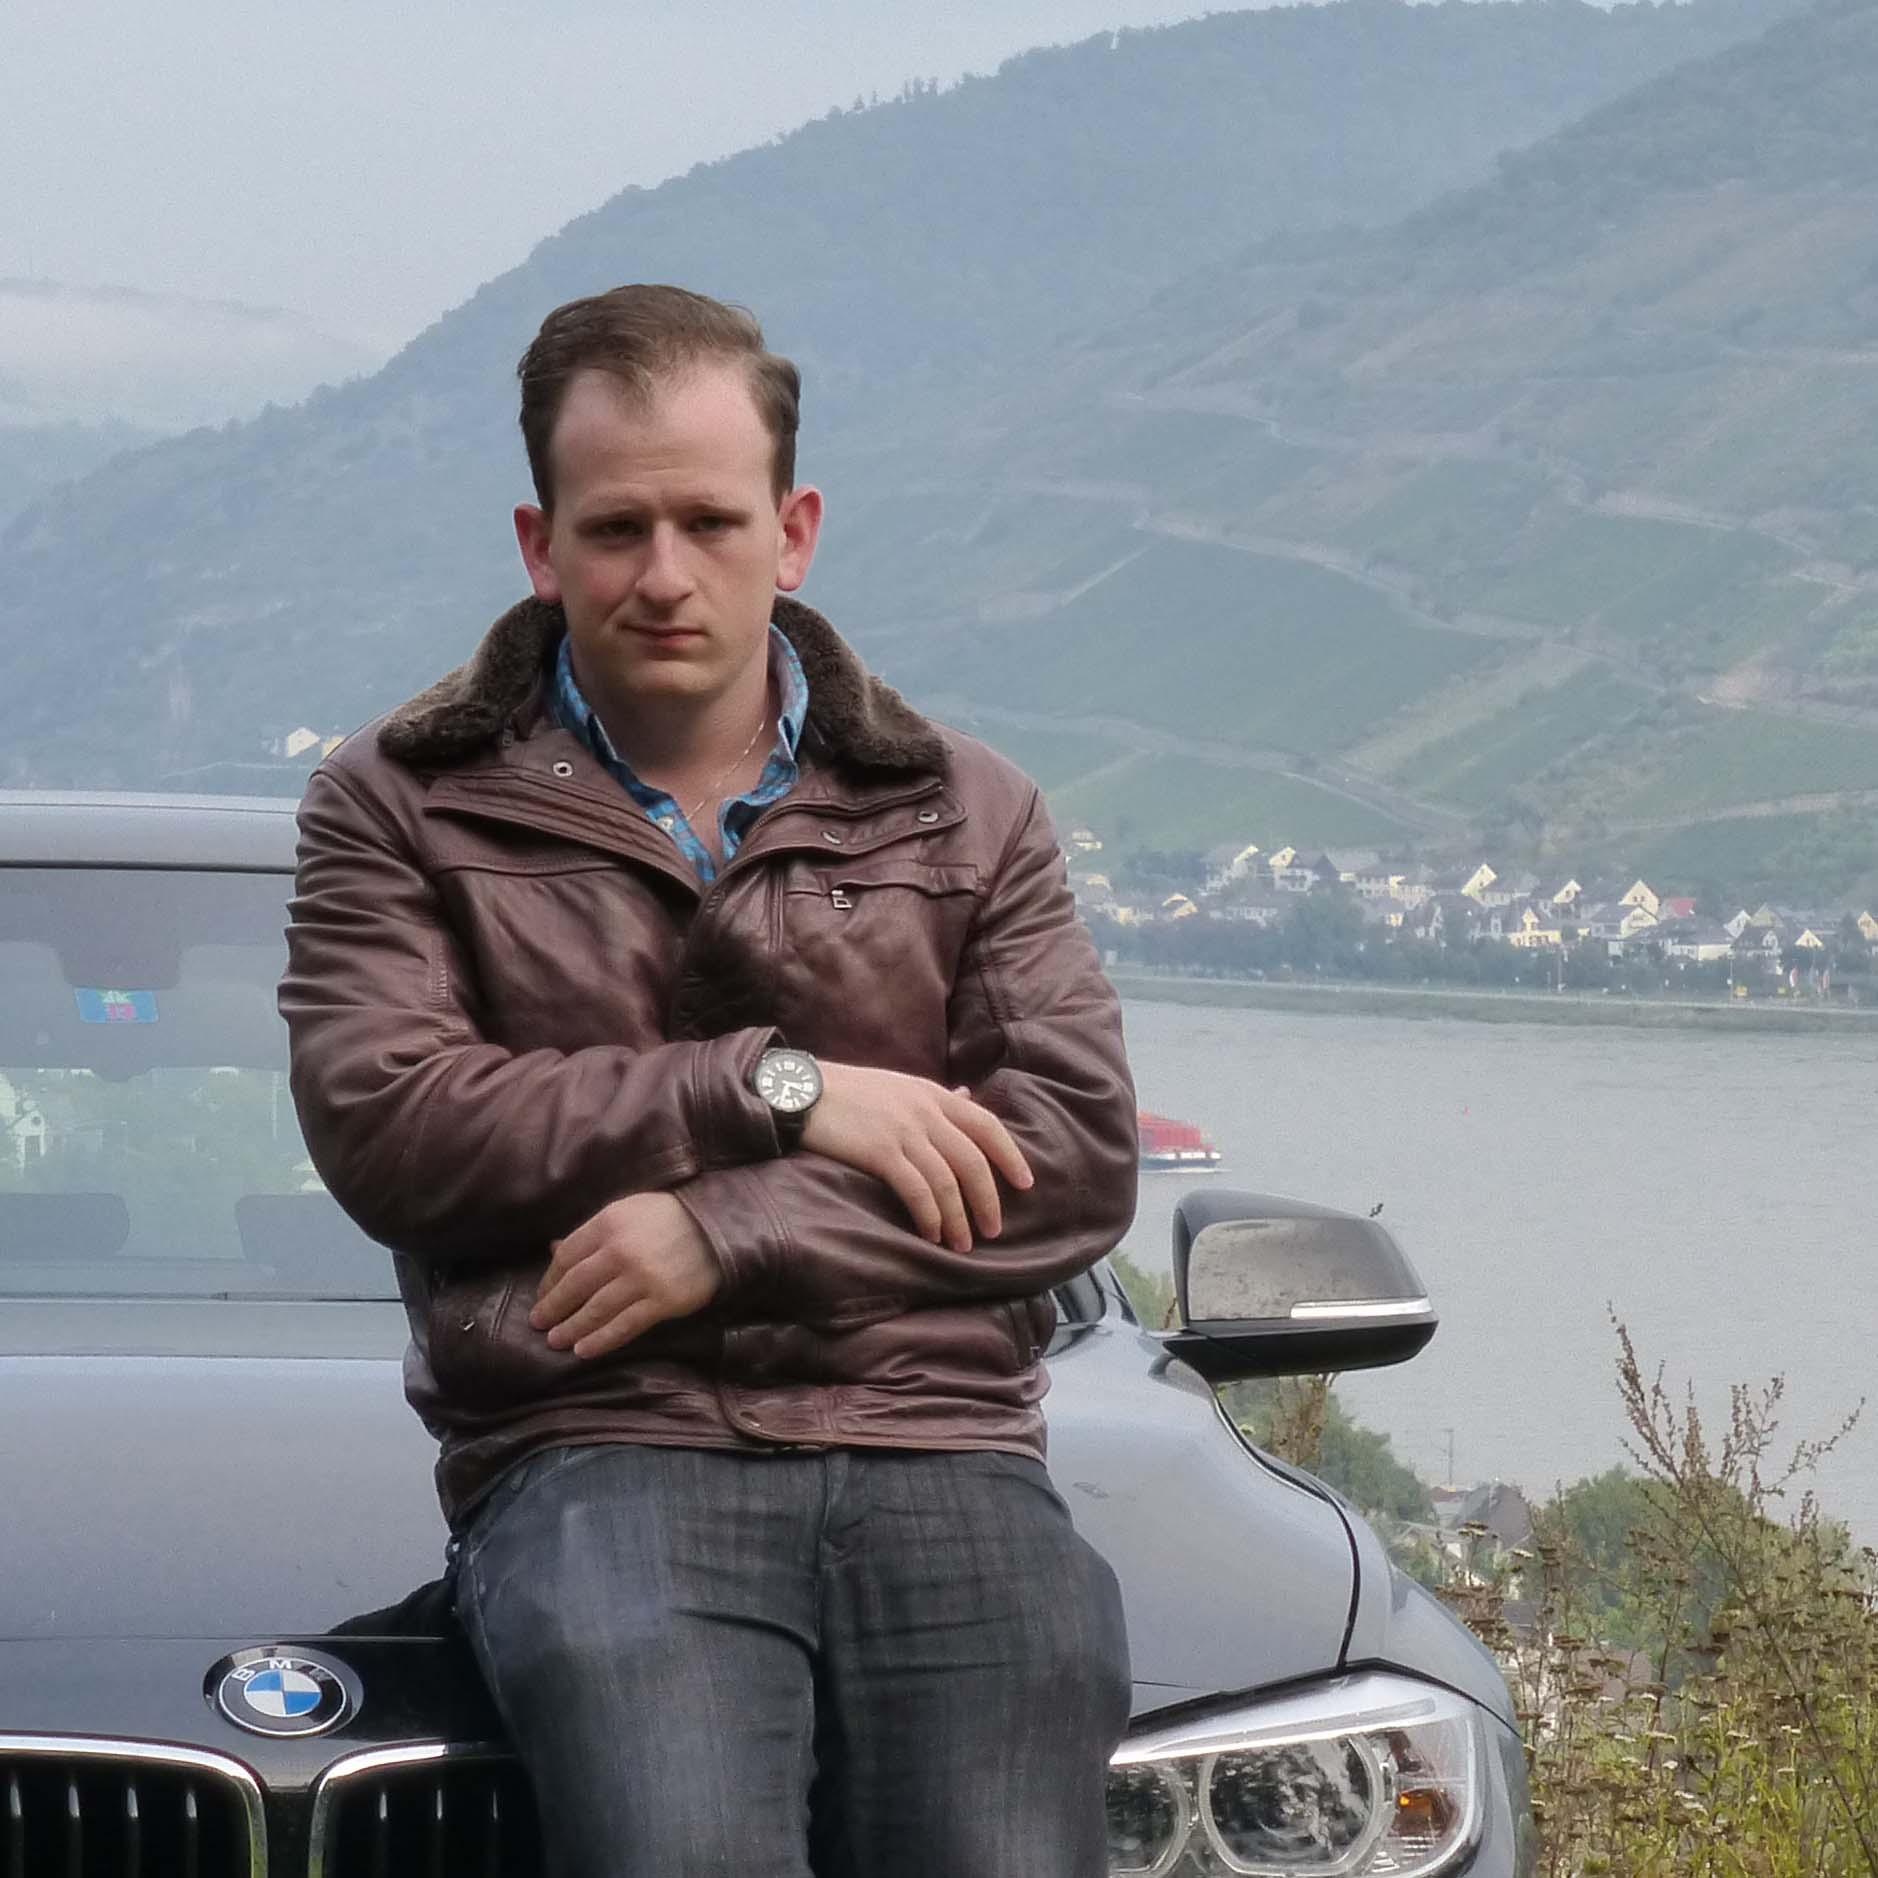 It was the cheapest rental in Germany with an automatic, I swear!